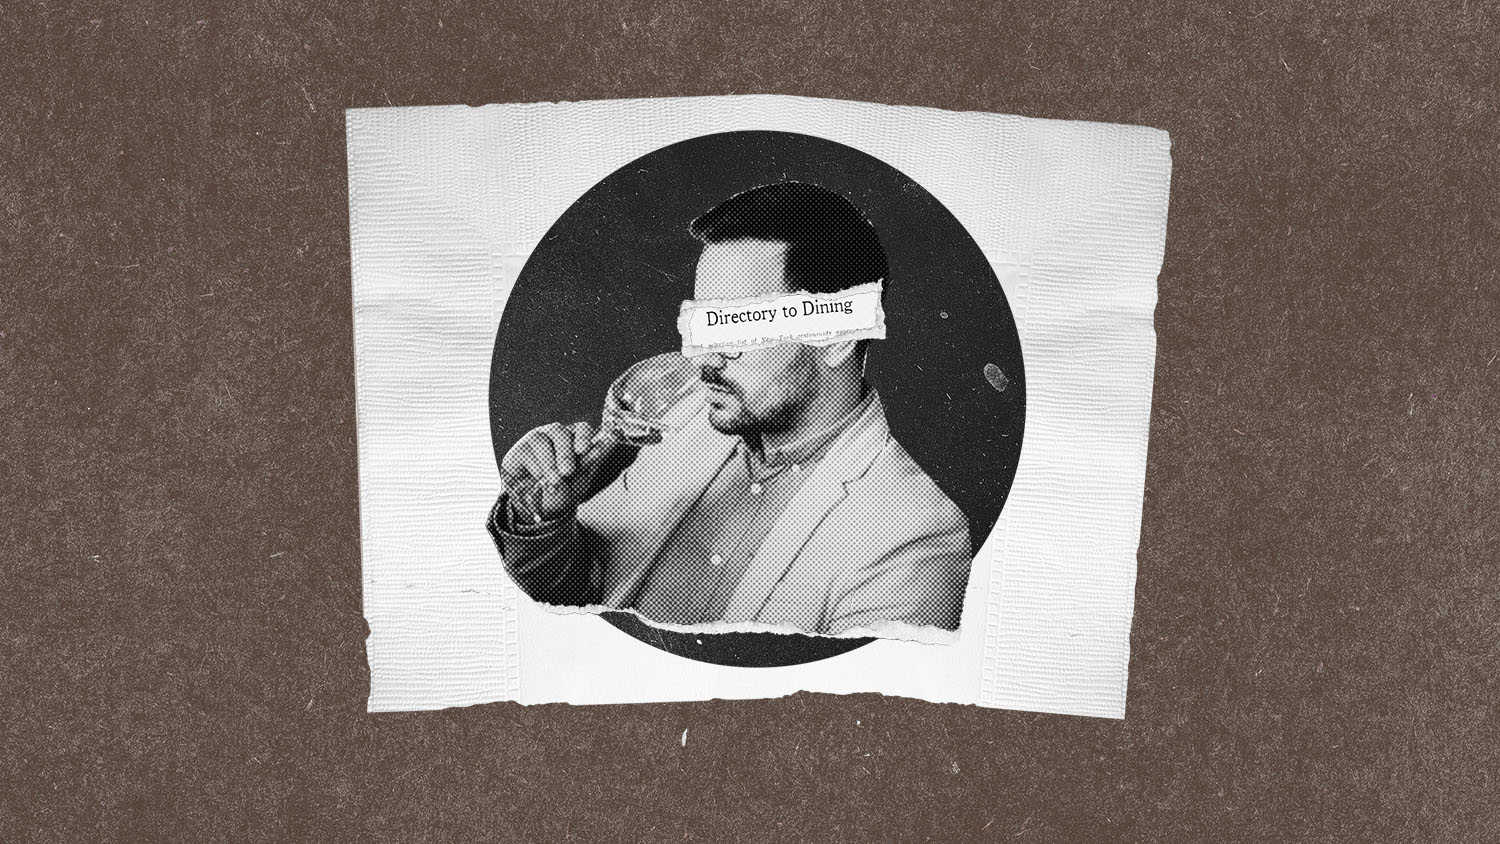 A man smells a wine glass in black and white, his eyes are cut out with newspaper food critic reviews on top of a white napkin and coffee brown background. October 2021